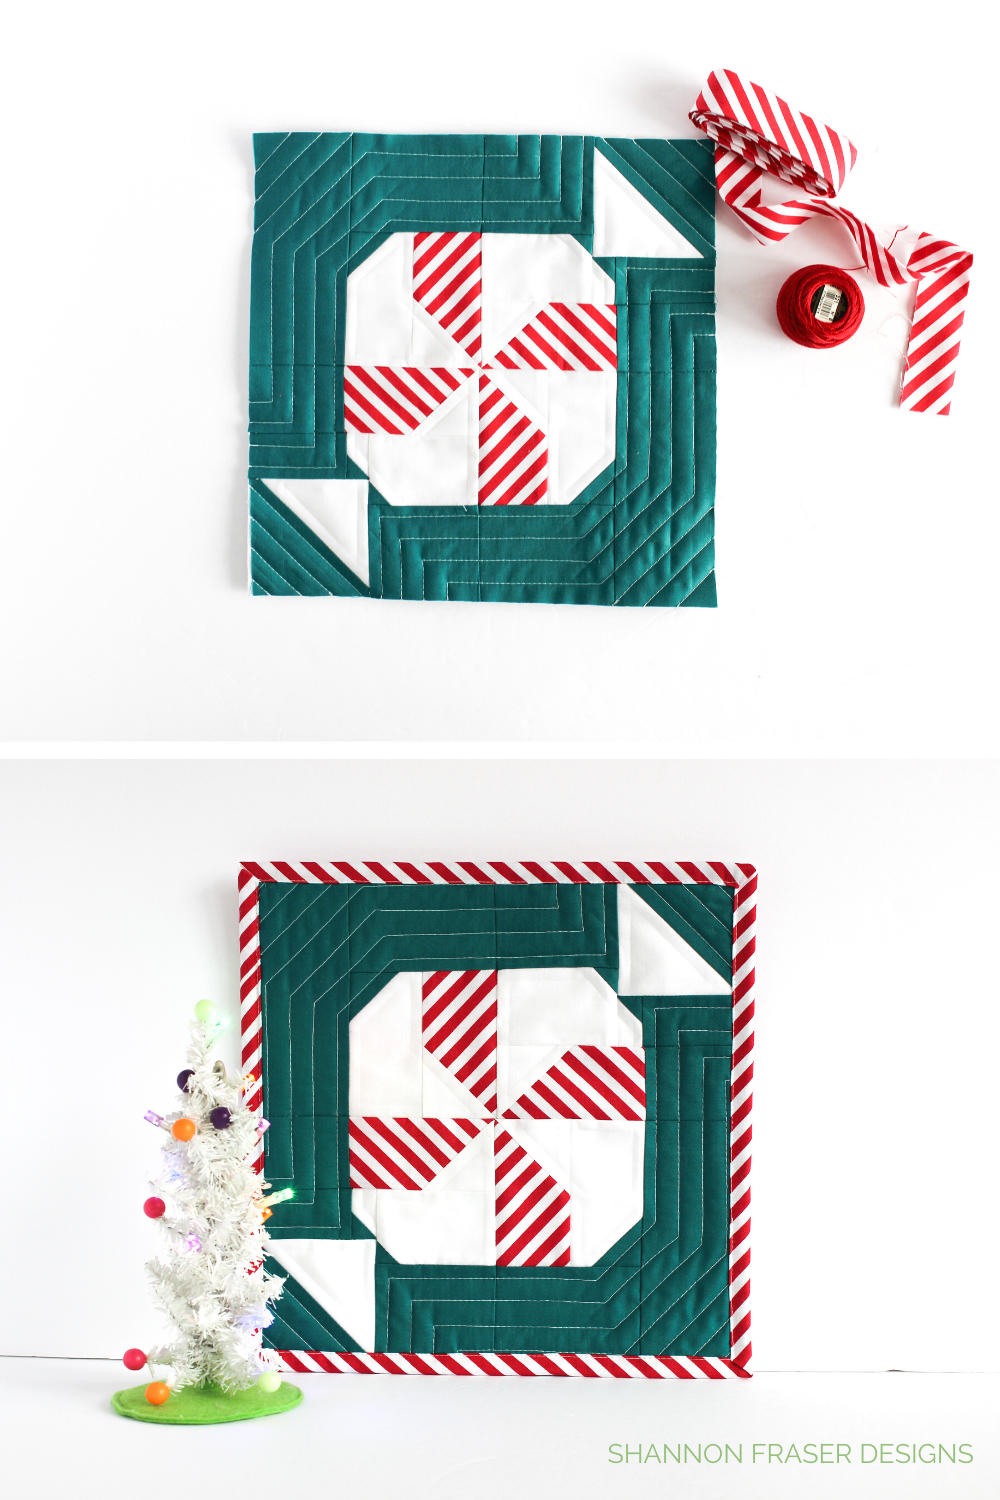 Quilted mini Mint Block with red candy cane stripe binding next to it and showing the complete Mint block with white mini Christmas tree | Shannon Fraser Designs #DIYholidays